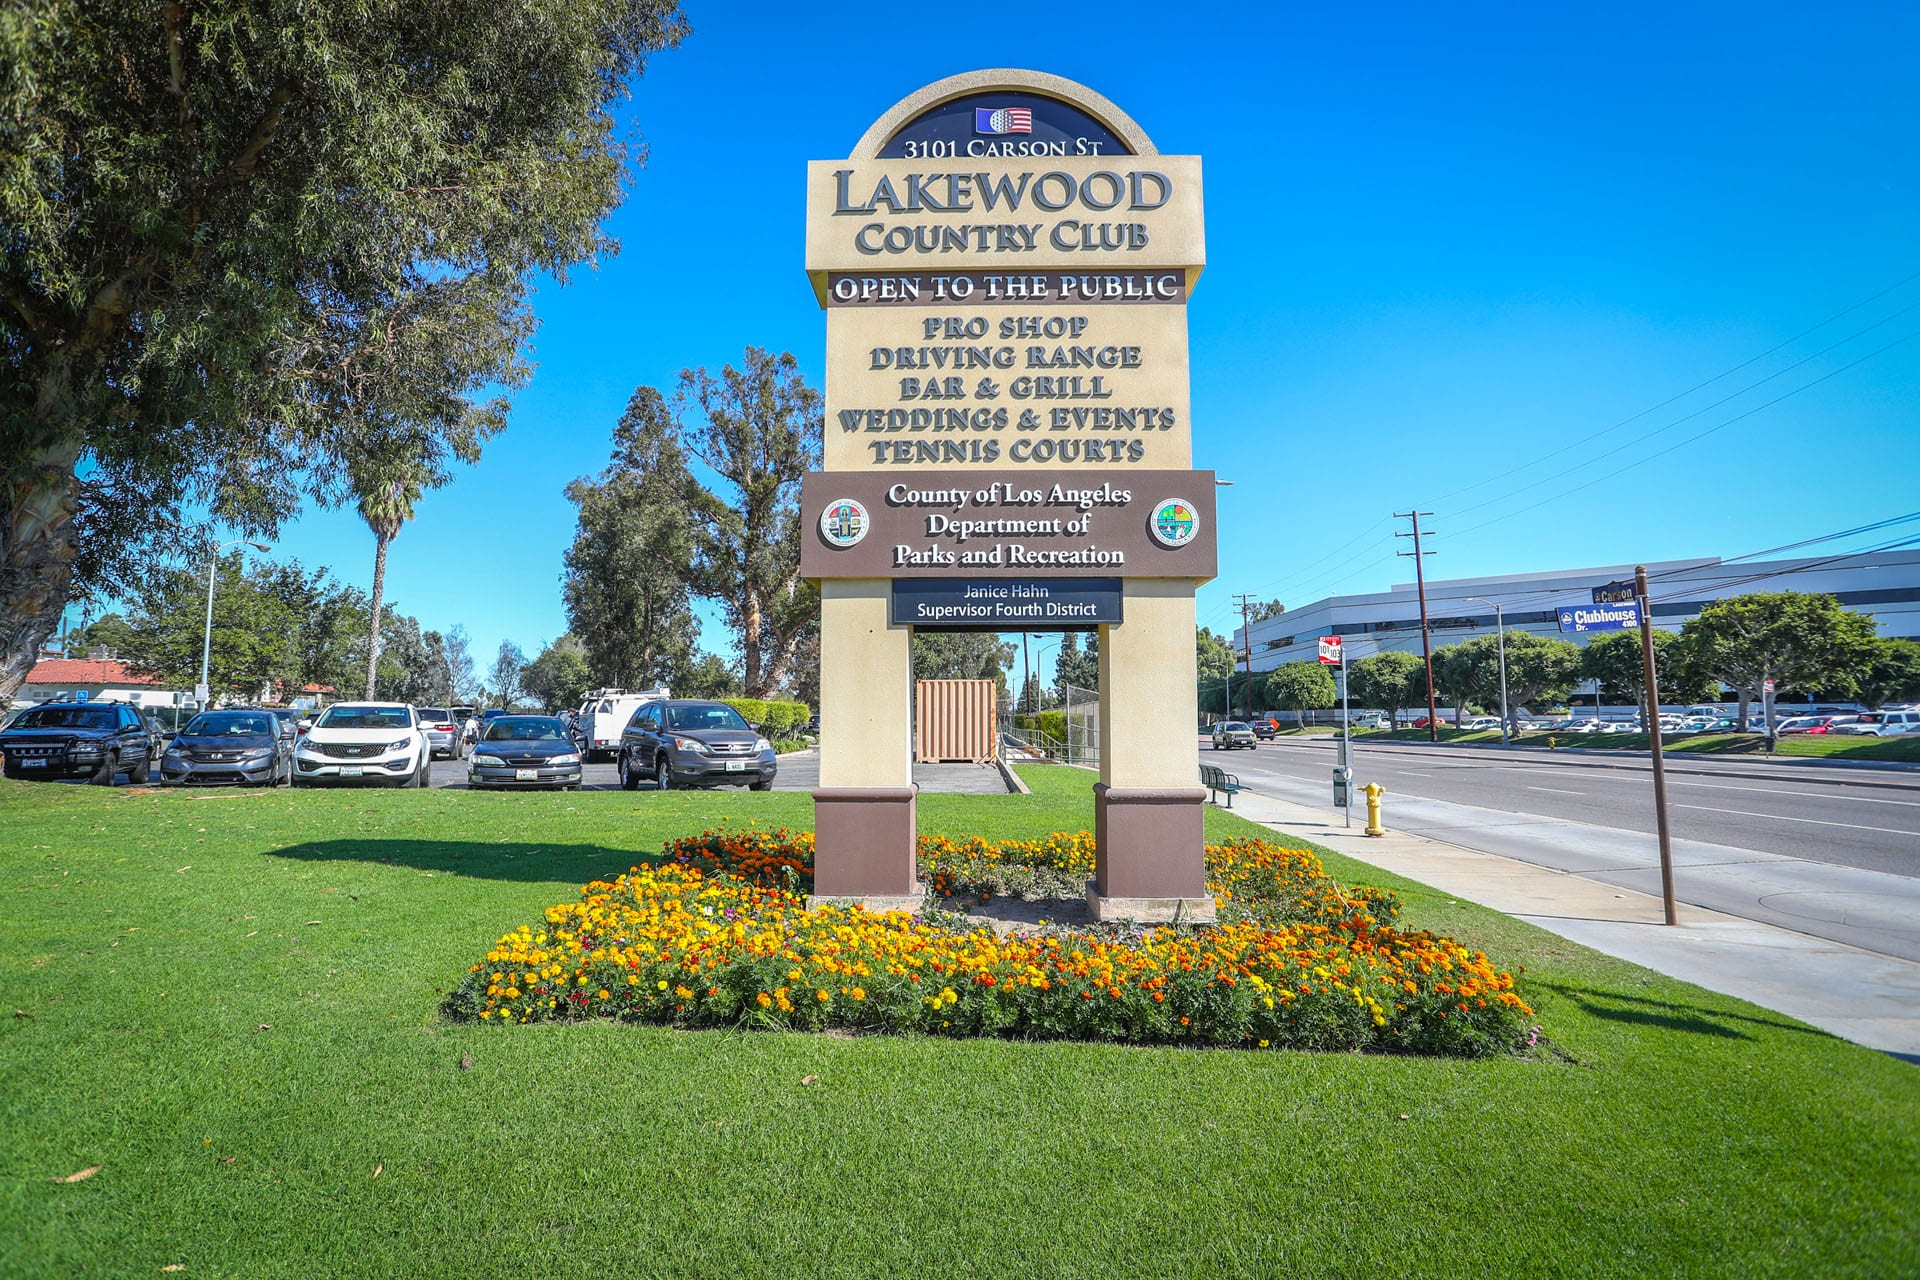 Lakewood Country Club sign